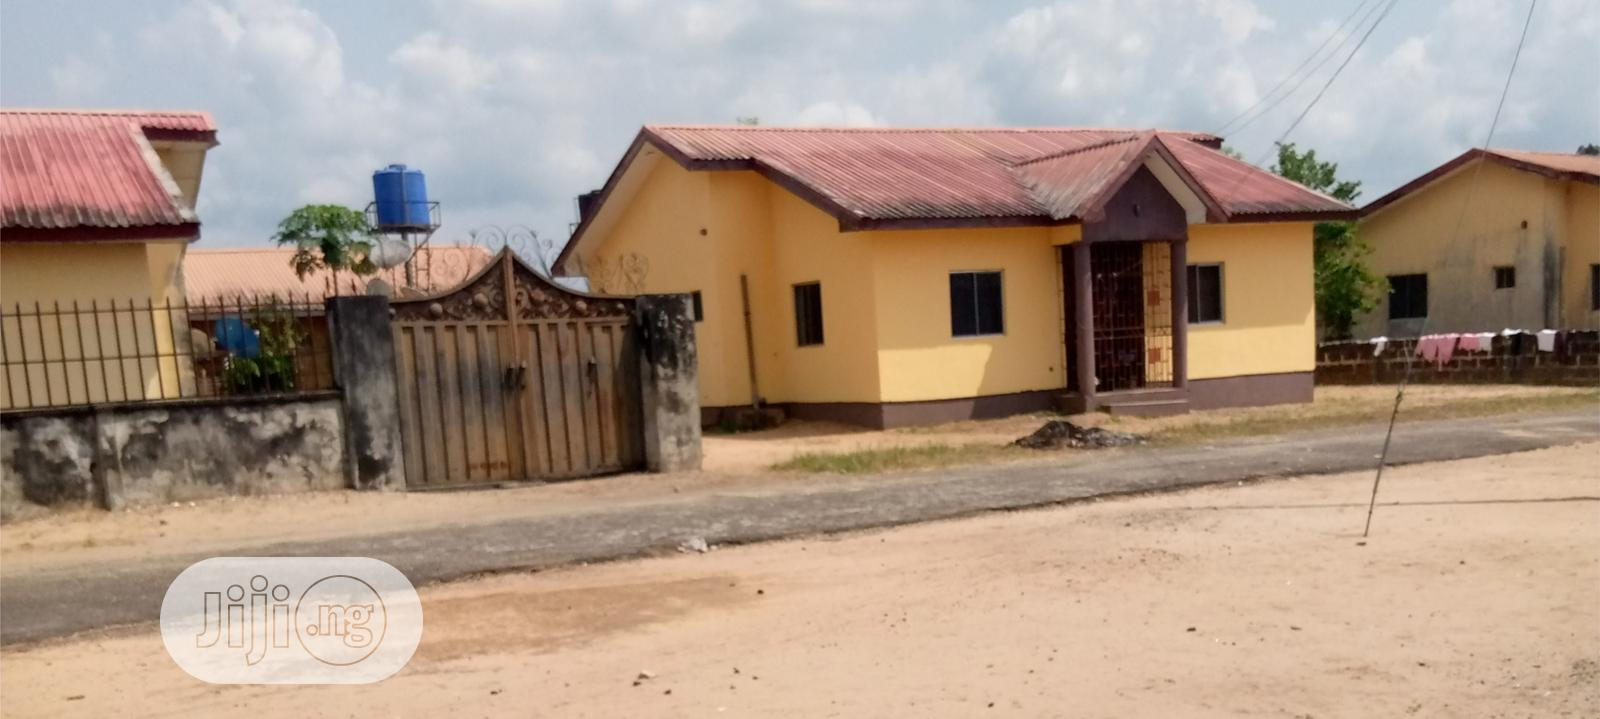 For Sale at Oleh, Delta State: 3 BR Flat in a LCHE